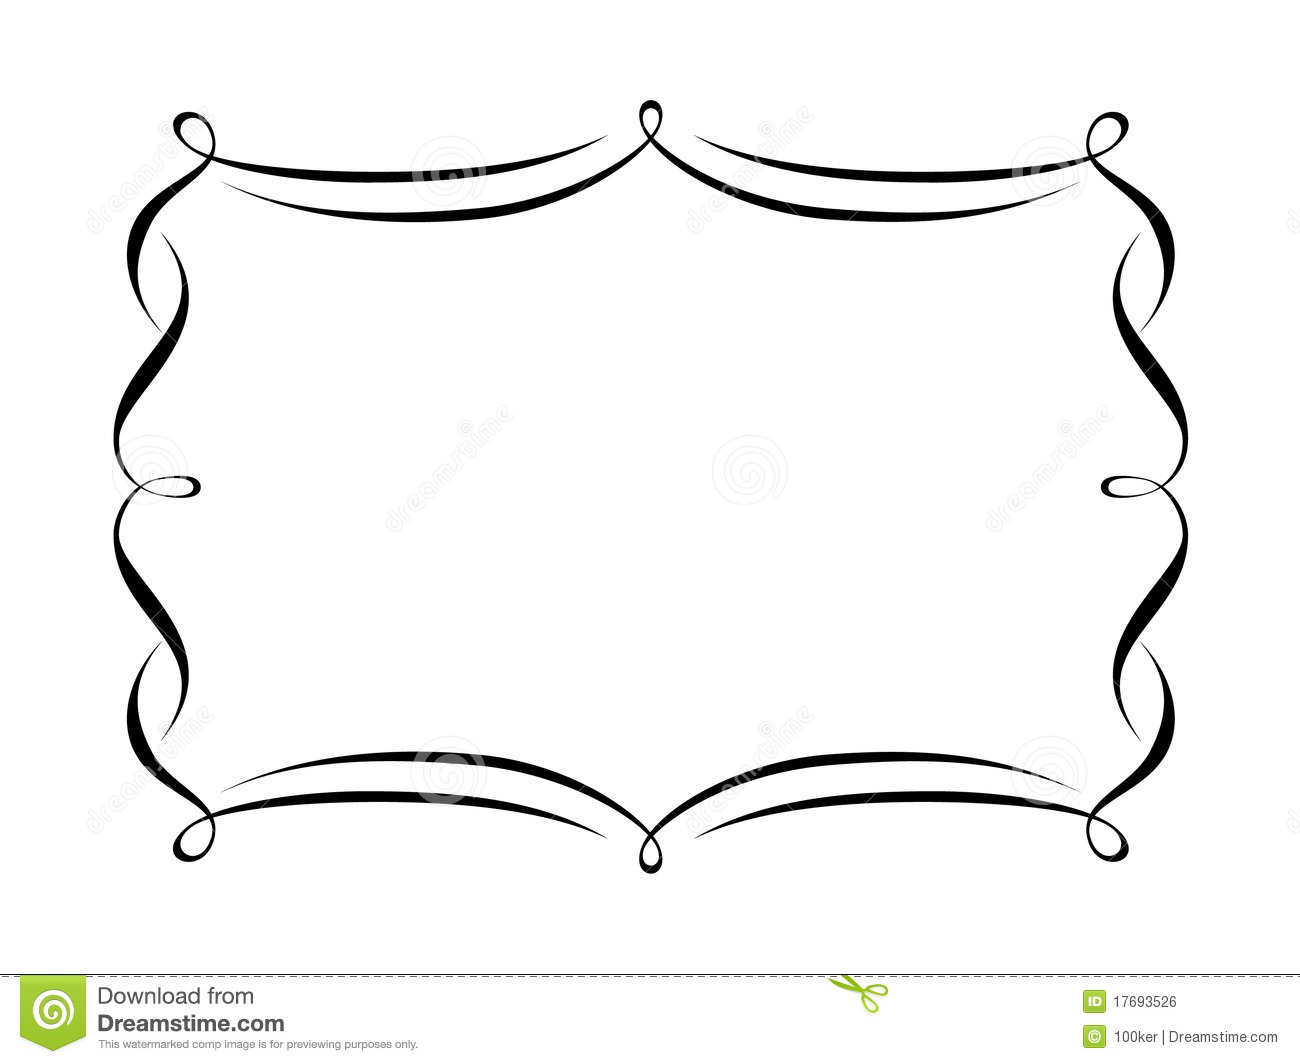 Penmanship Decorative Frame Stock Vector - Illustration of design ...